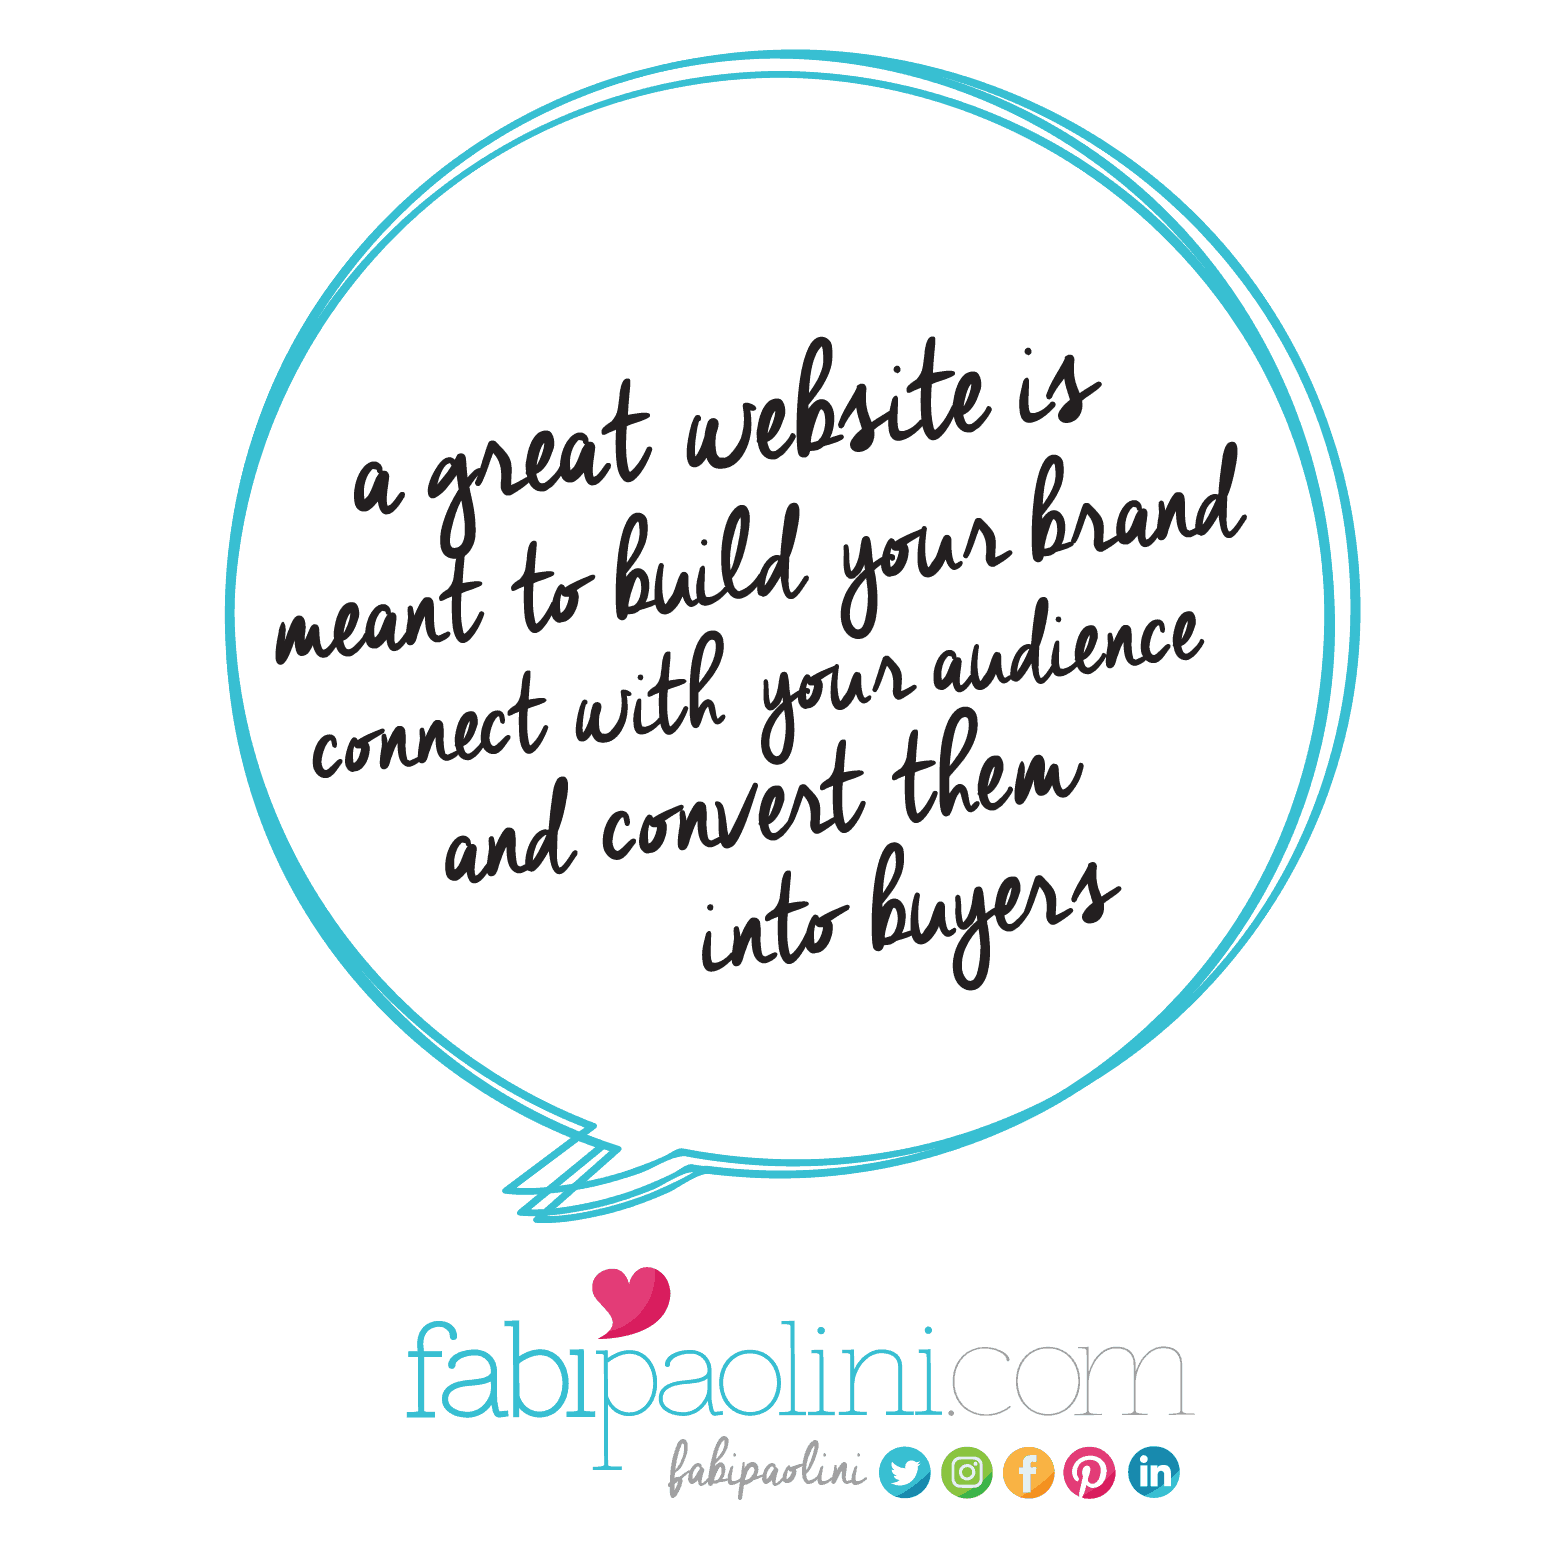 A great website is meant to build your brand, connect with your audience and convert them into buyers | Great website | Fabi Paolini Branding + Web design